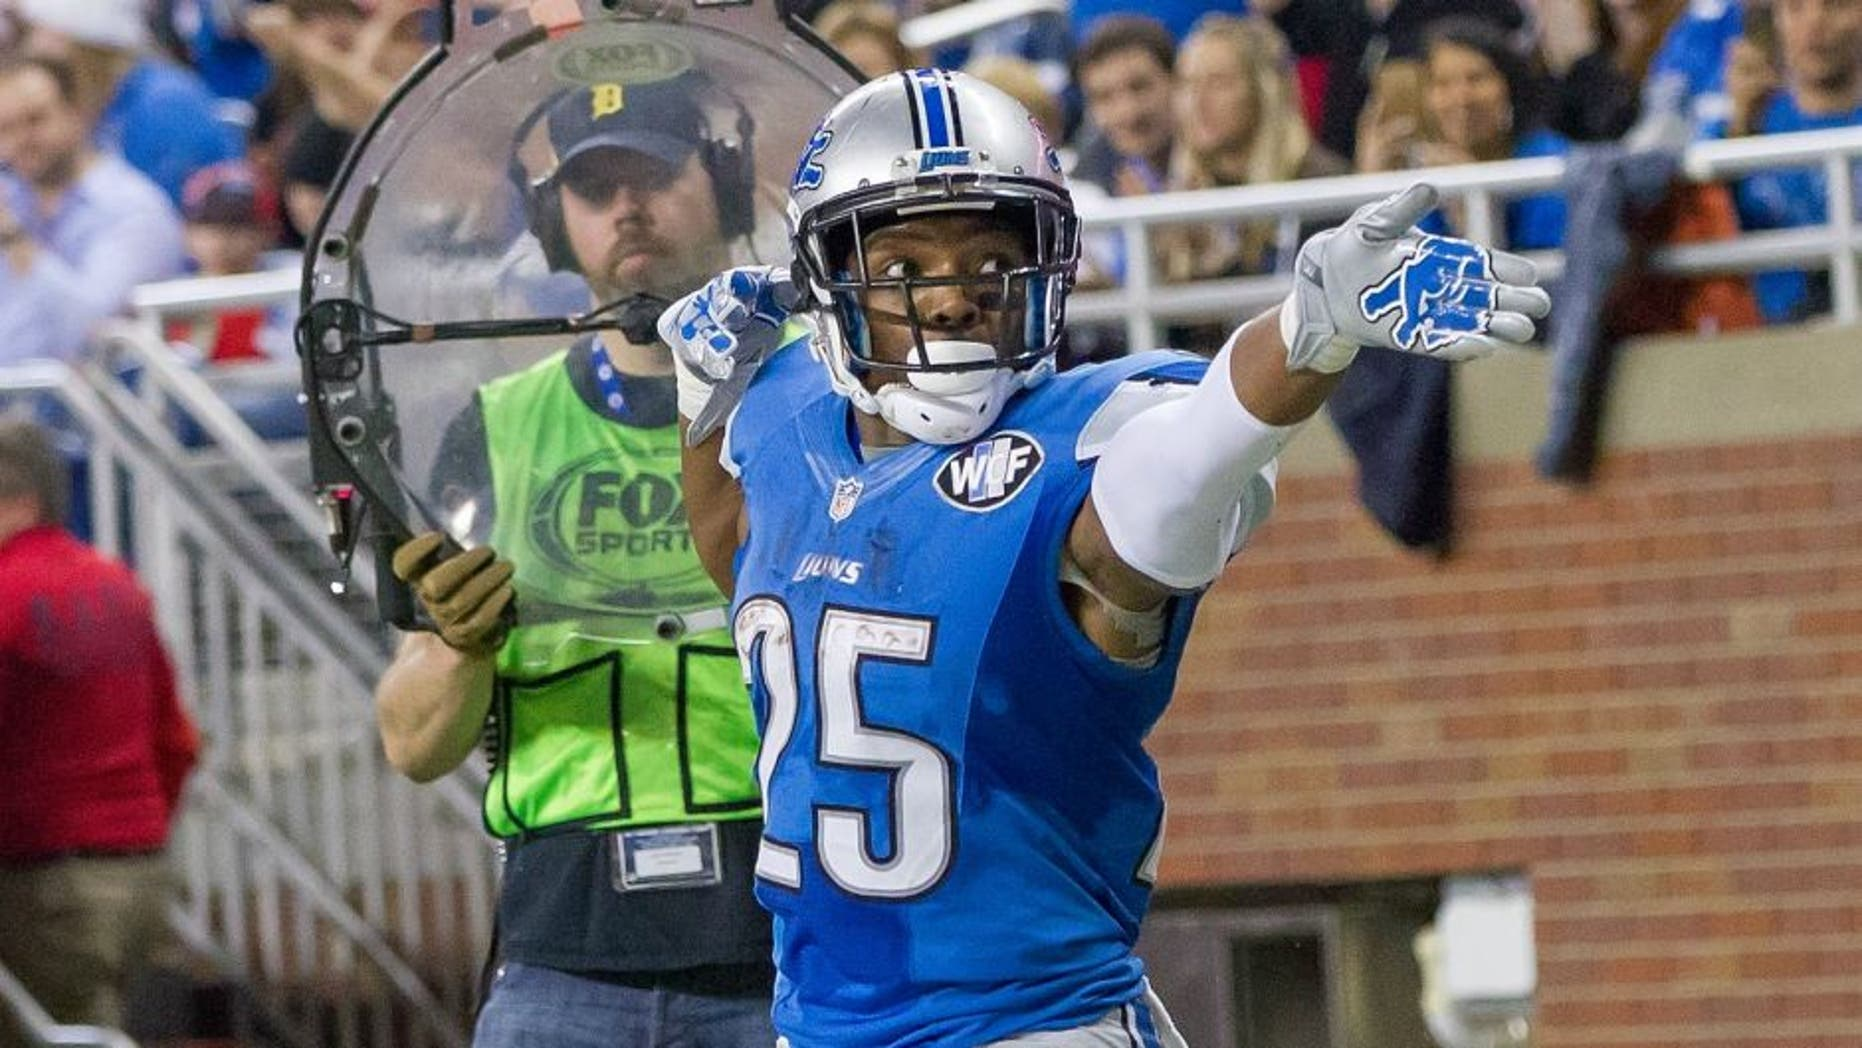 DETROIT, MI - DECEMBER 27: Theo Riddick #25 of the Detroit Lions points down field after getting a first down during an NFL game against the San Francisco 49ers at Ford Field on December 27, 2015 in Detroit, Michigan. The Lions defeated the 49ers 32-17. (Photo by Dave Reginek/Getty Images)